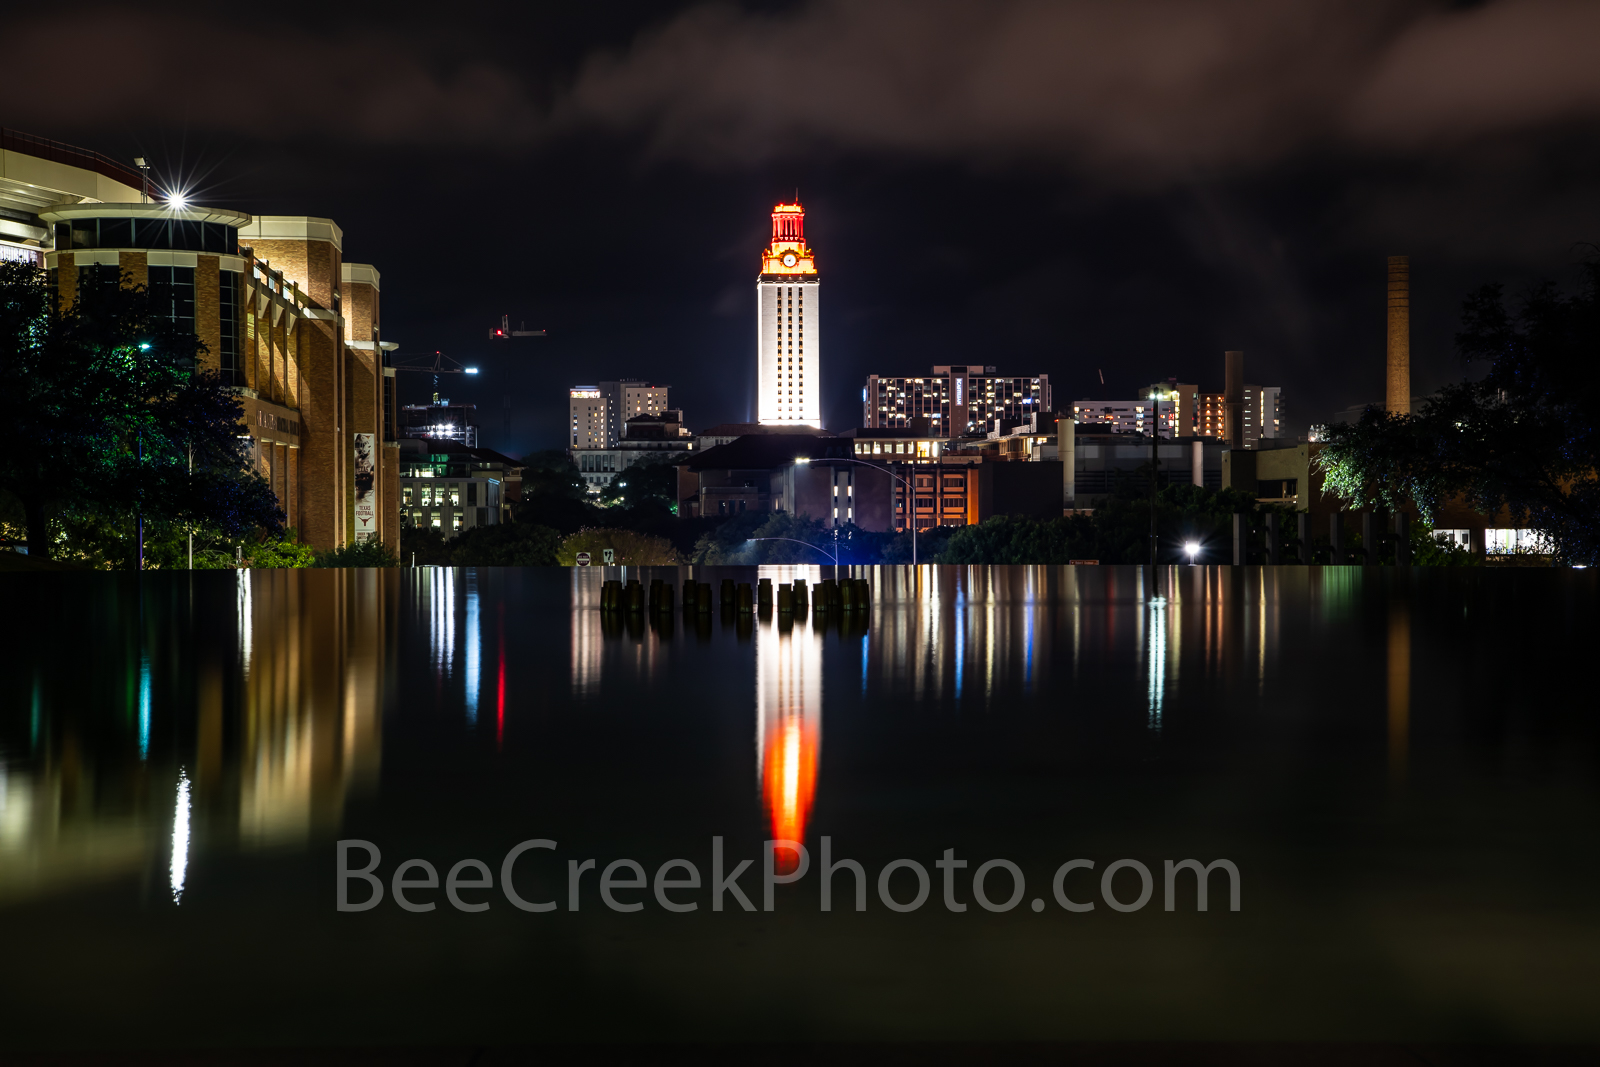 Austin, UT, University of Texas, tower, campus. building, orange, burnt, wins, game, stadium, UT tower, stadium, landmark, images of austin, images of texas,, photo